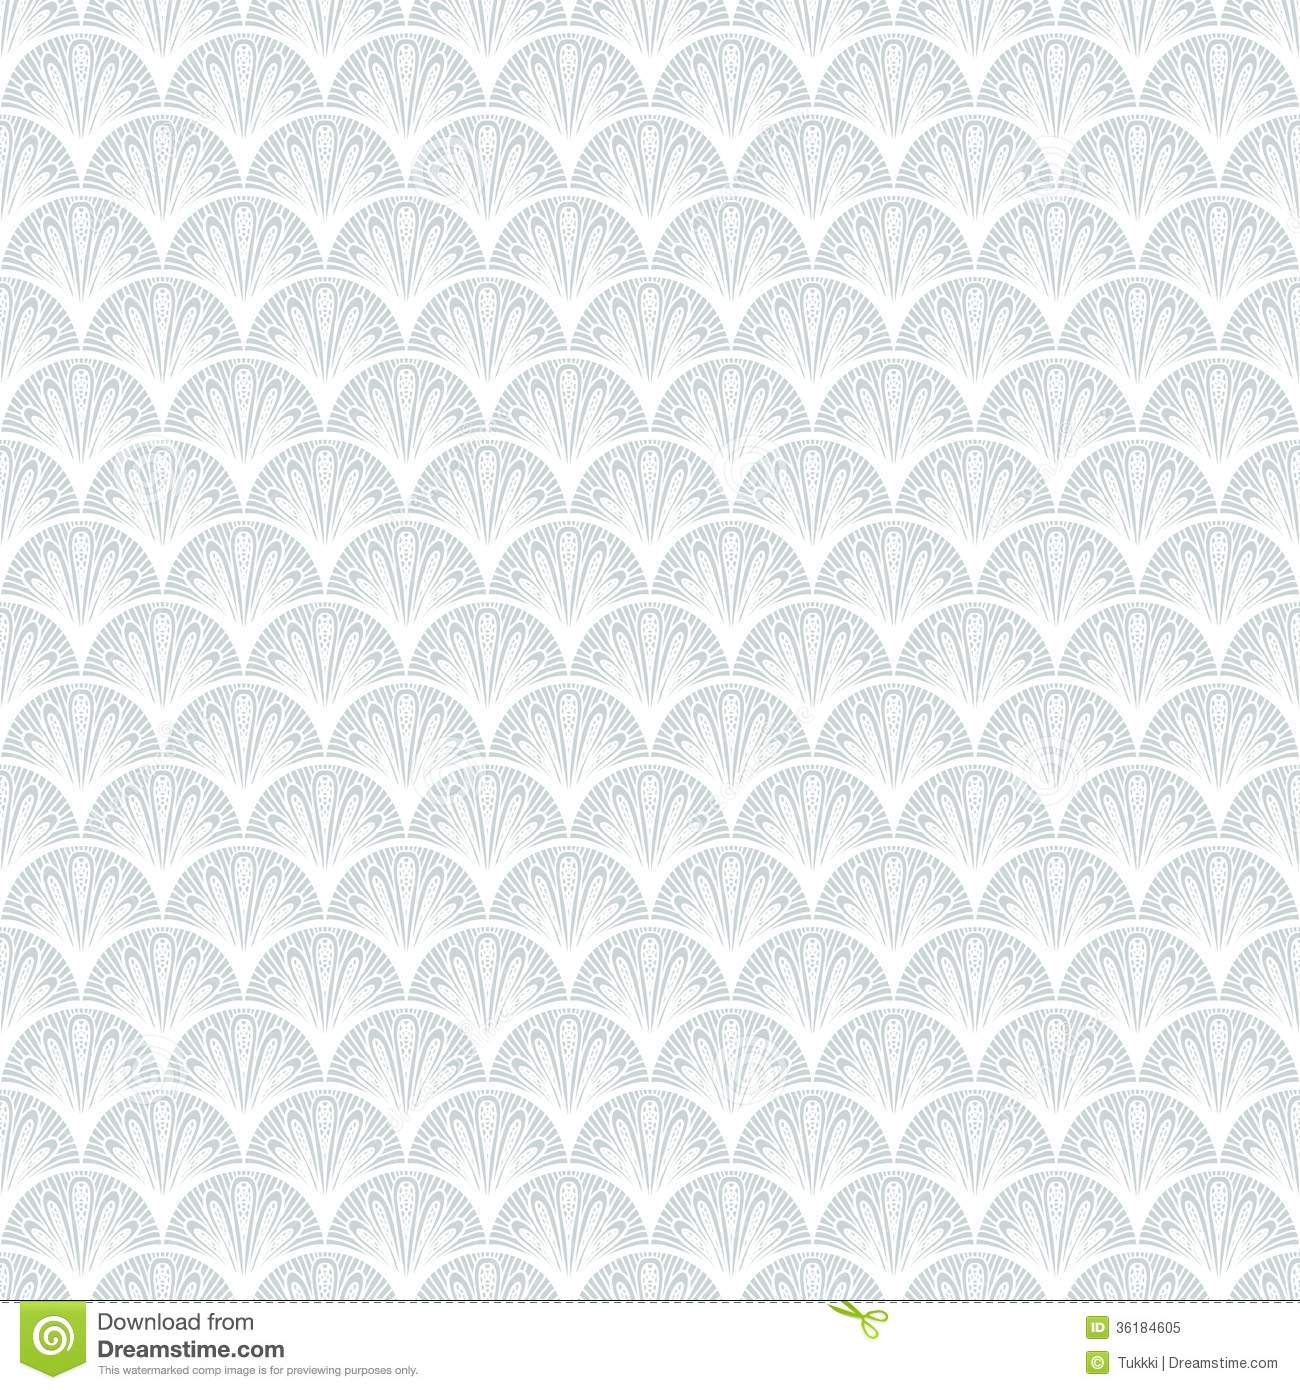 Art deco vector geometric pattern in silver white royalty for Wallpaper home texture